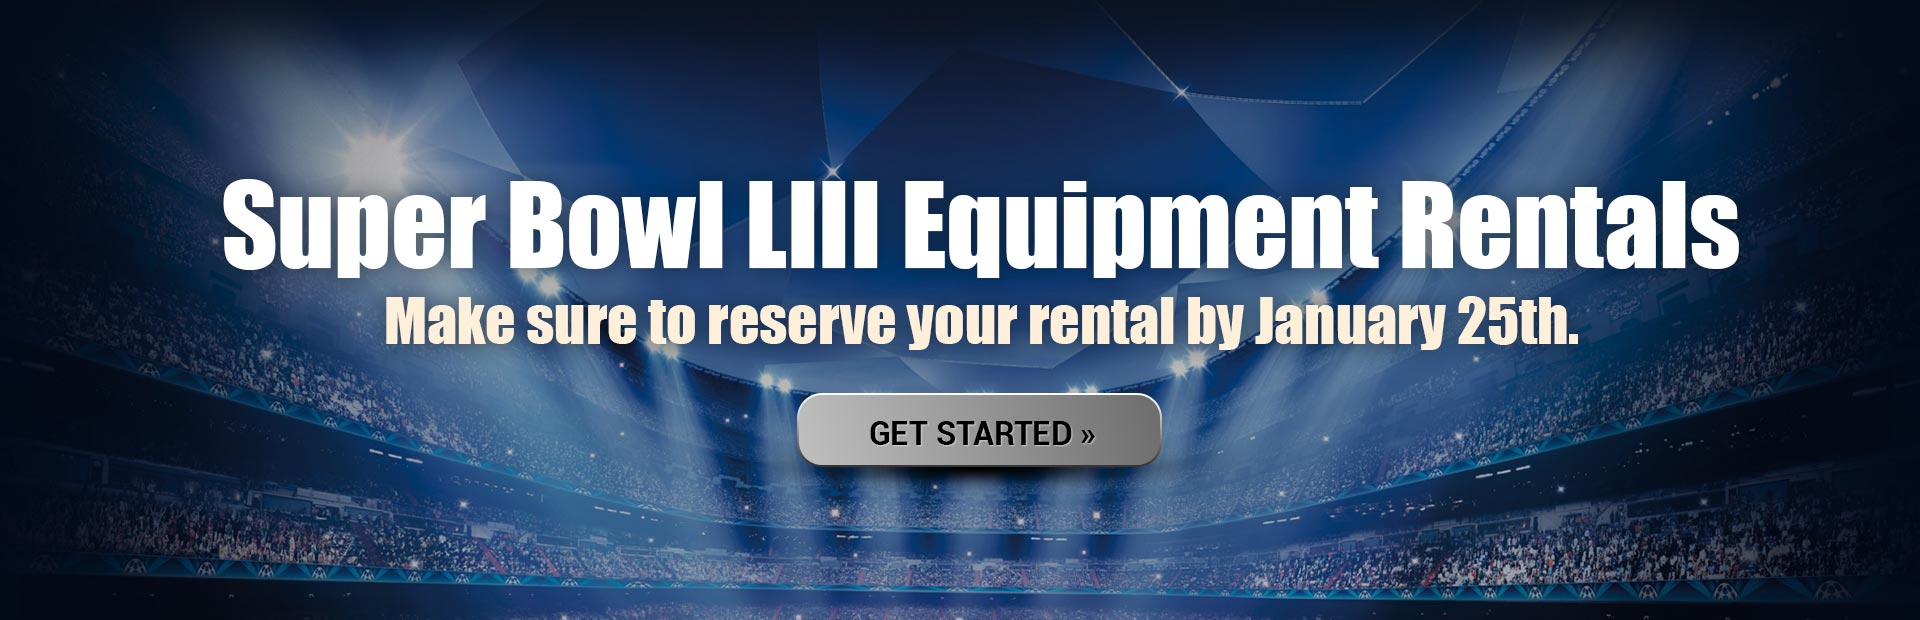 Super Bowl LIII Equipment Rentals: Reserve yours by January 25th.